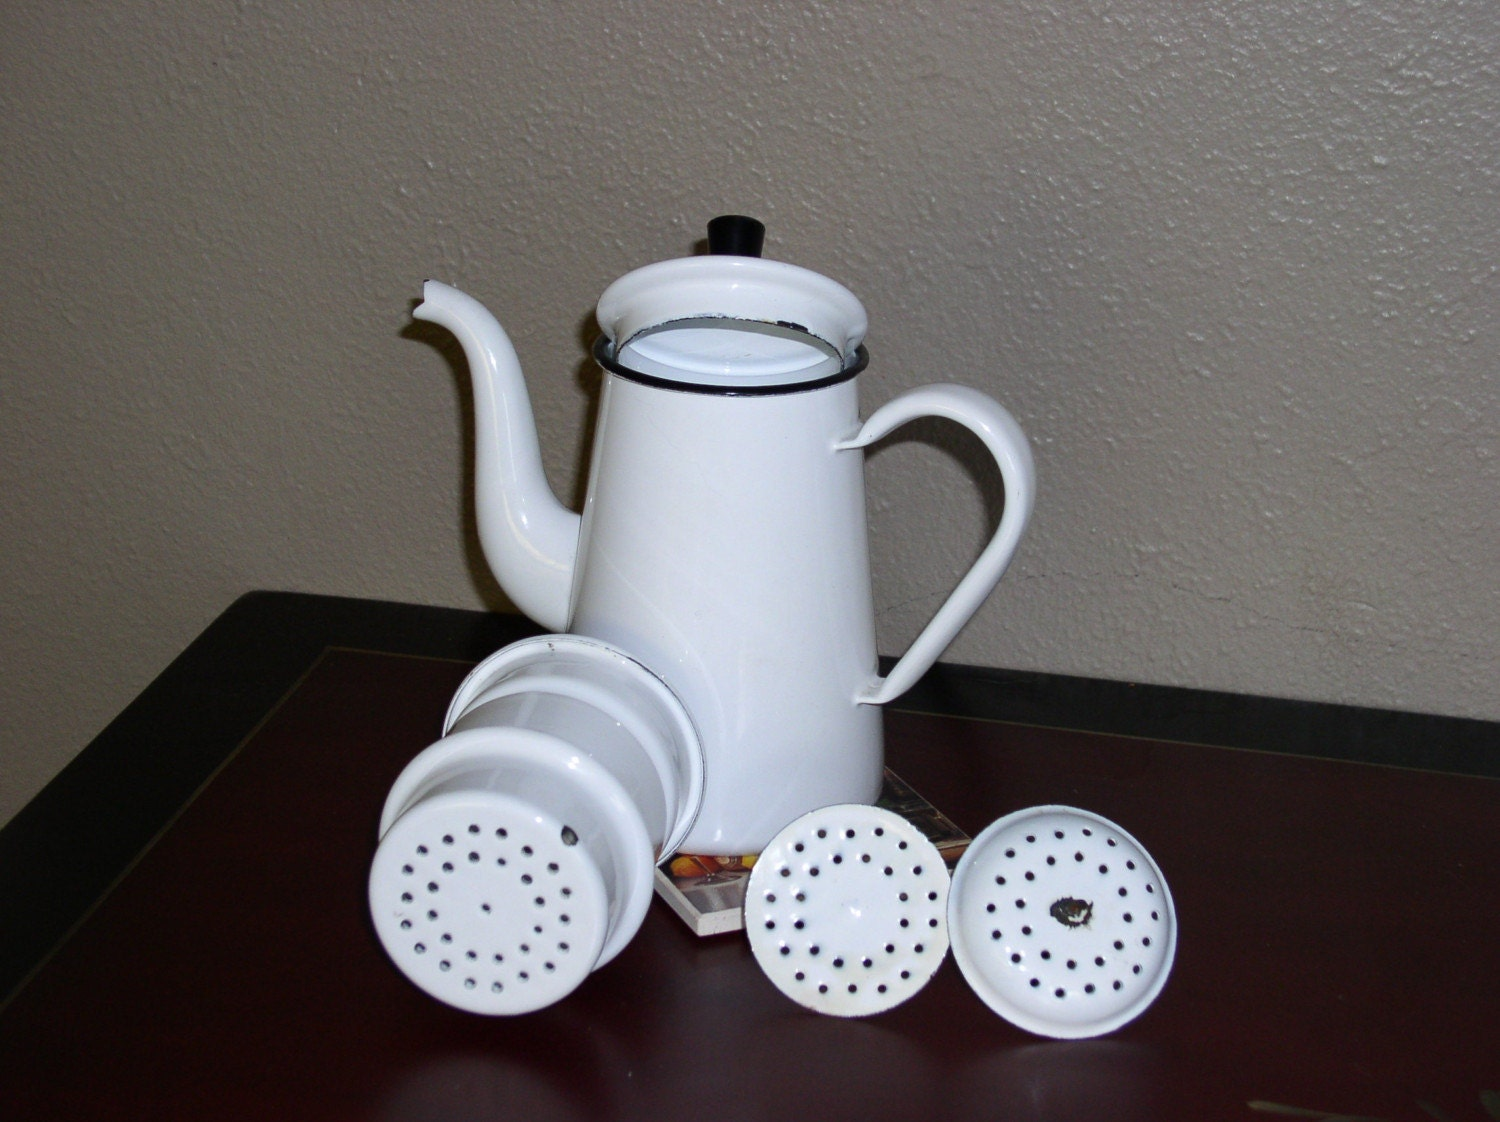 enamel 2 cup drip stovetop coffee pot